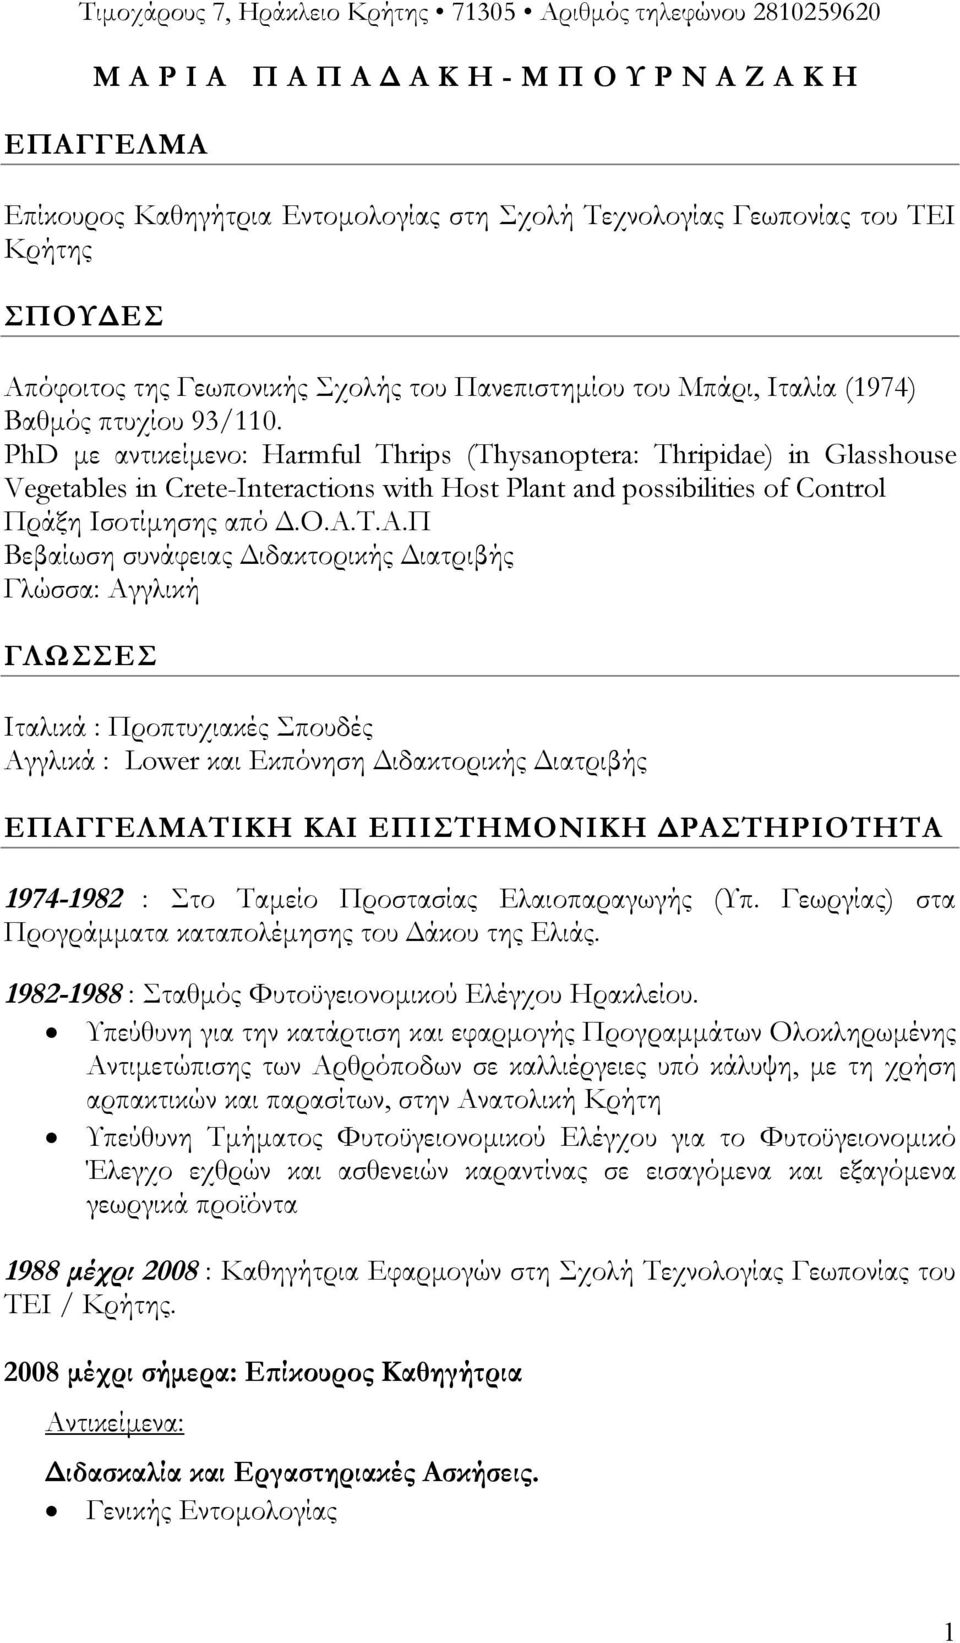 PhD με αντικείμενο: Harmful Thrips (Thysanoptera: Thripidae) in Glasshouse Vegetables in Crete-Interactions with Host Plant and possibilities of Control Πράξη Iσοτίμησης από Δ.Ο.Α.